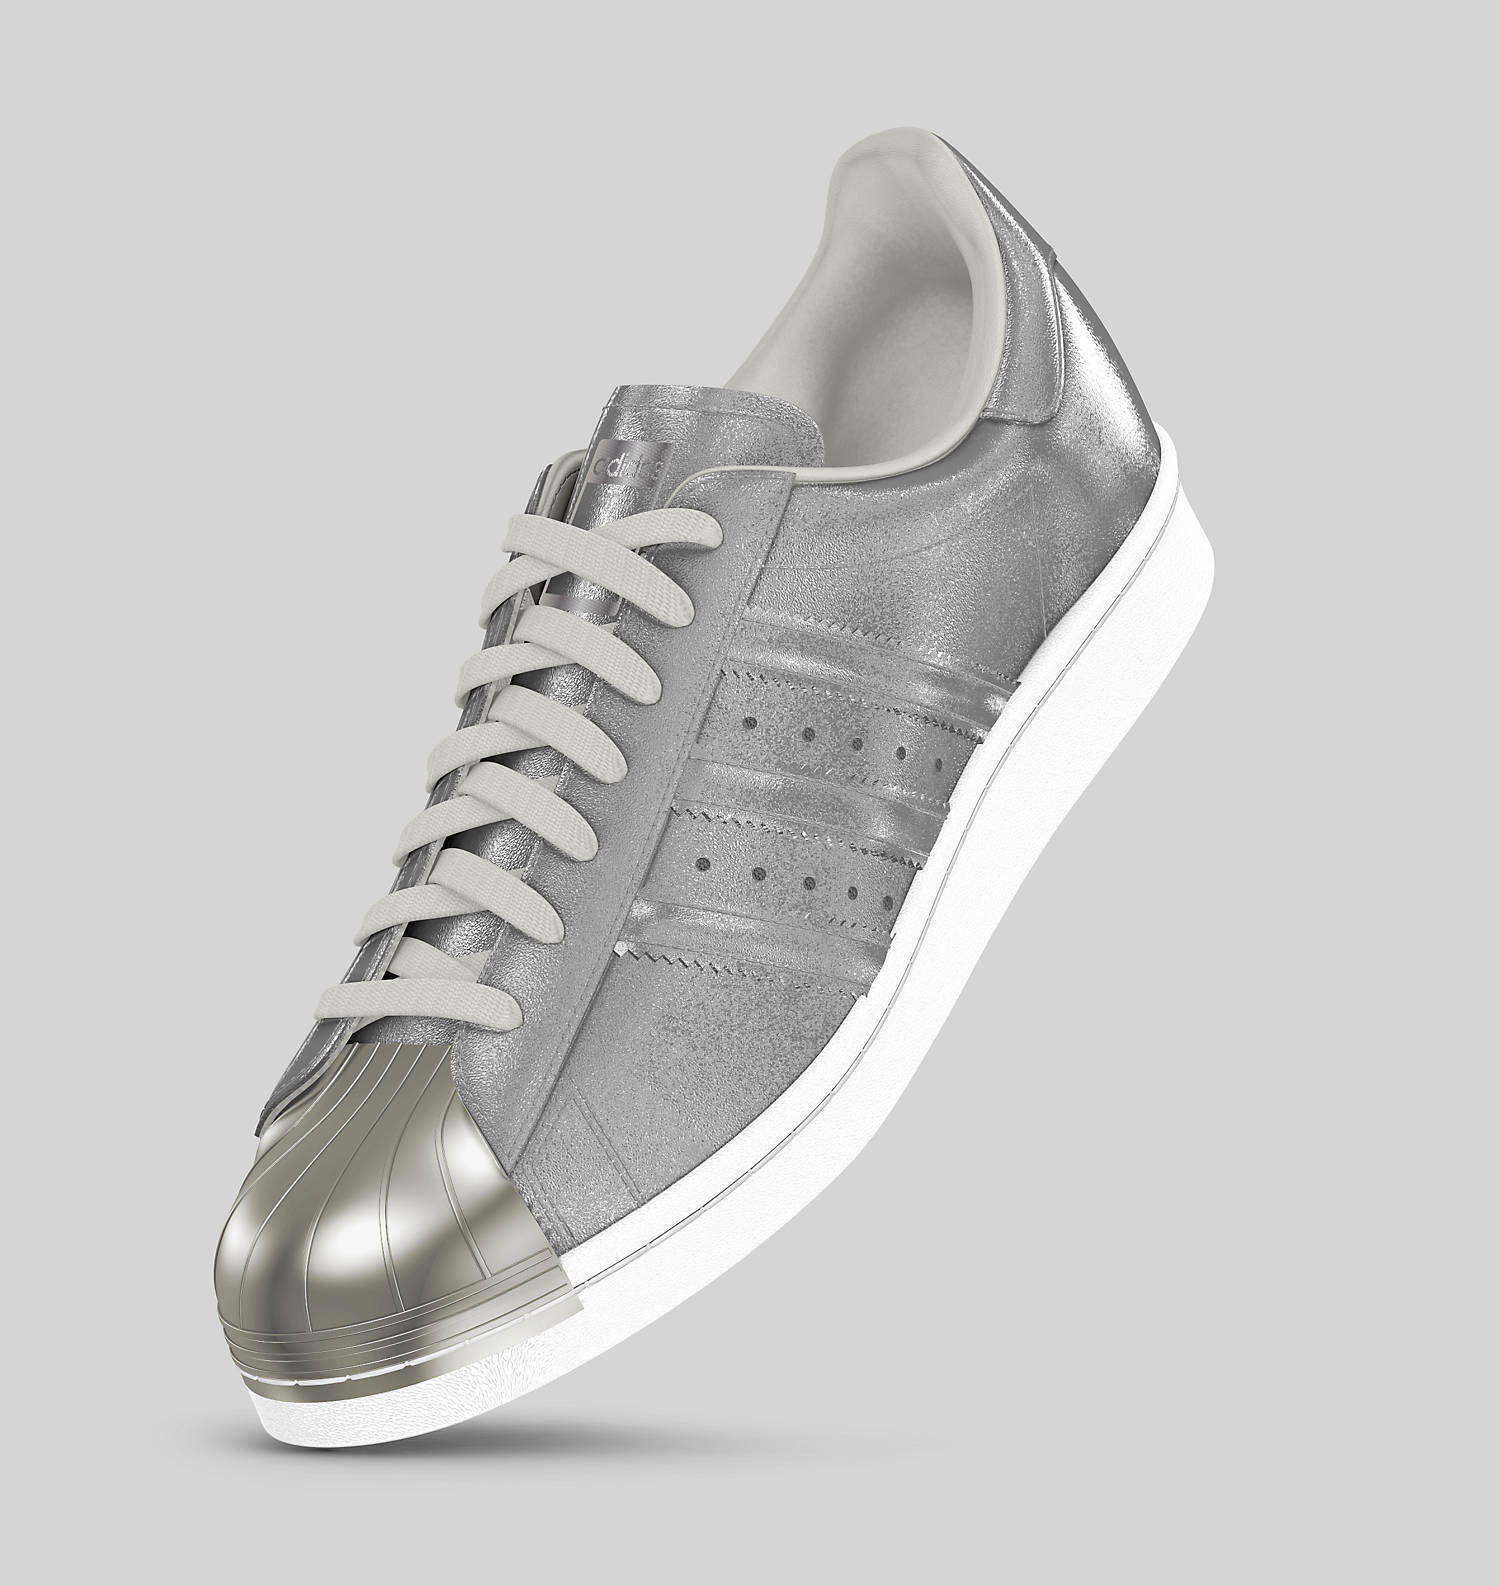 New Adidas Superstar Silver Metallic Mono Custom Mi Mens Authentic Shoes